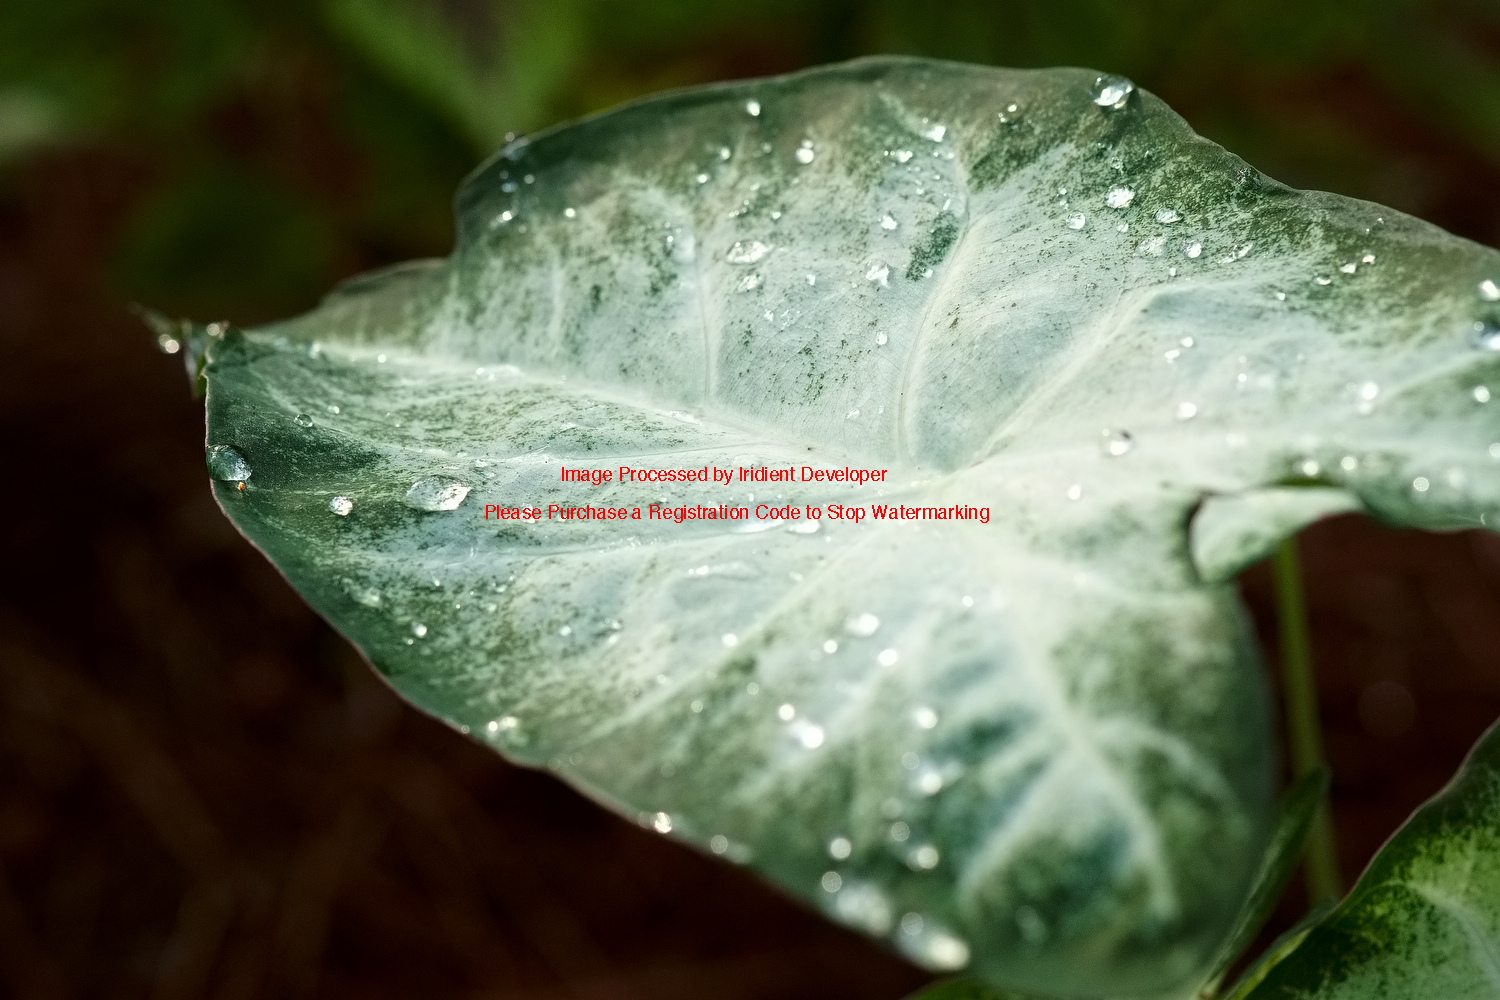 caladium leaf with rain drops